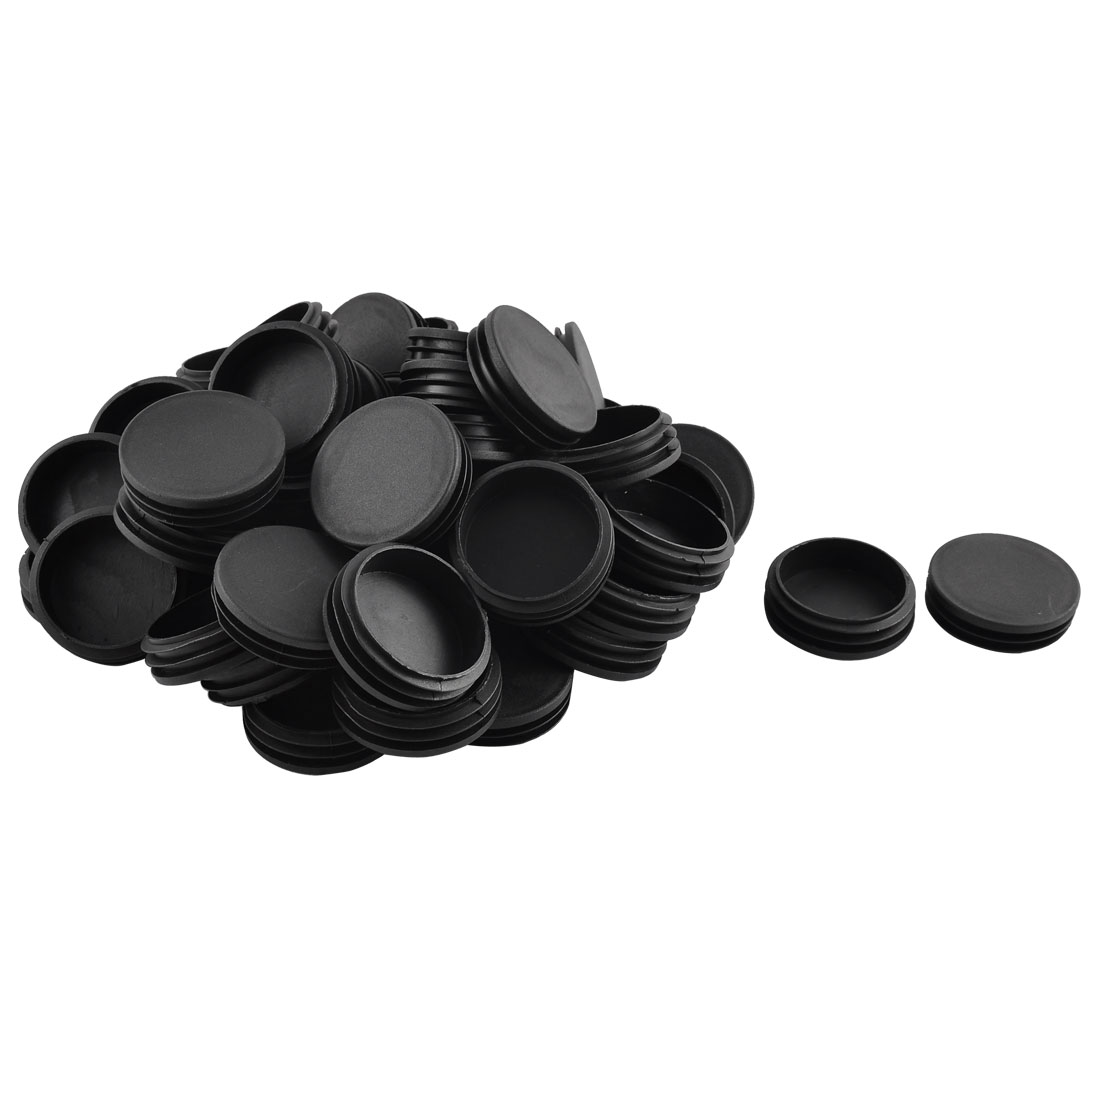 Home Plastic Round Shaped Furniture Table Chair Leg Feet Tube Insert Black 50 Pcs 6cm Diameter